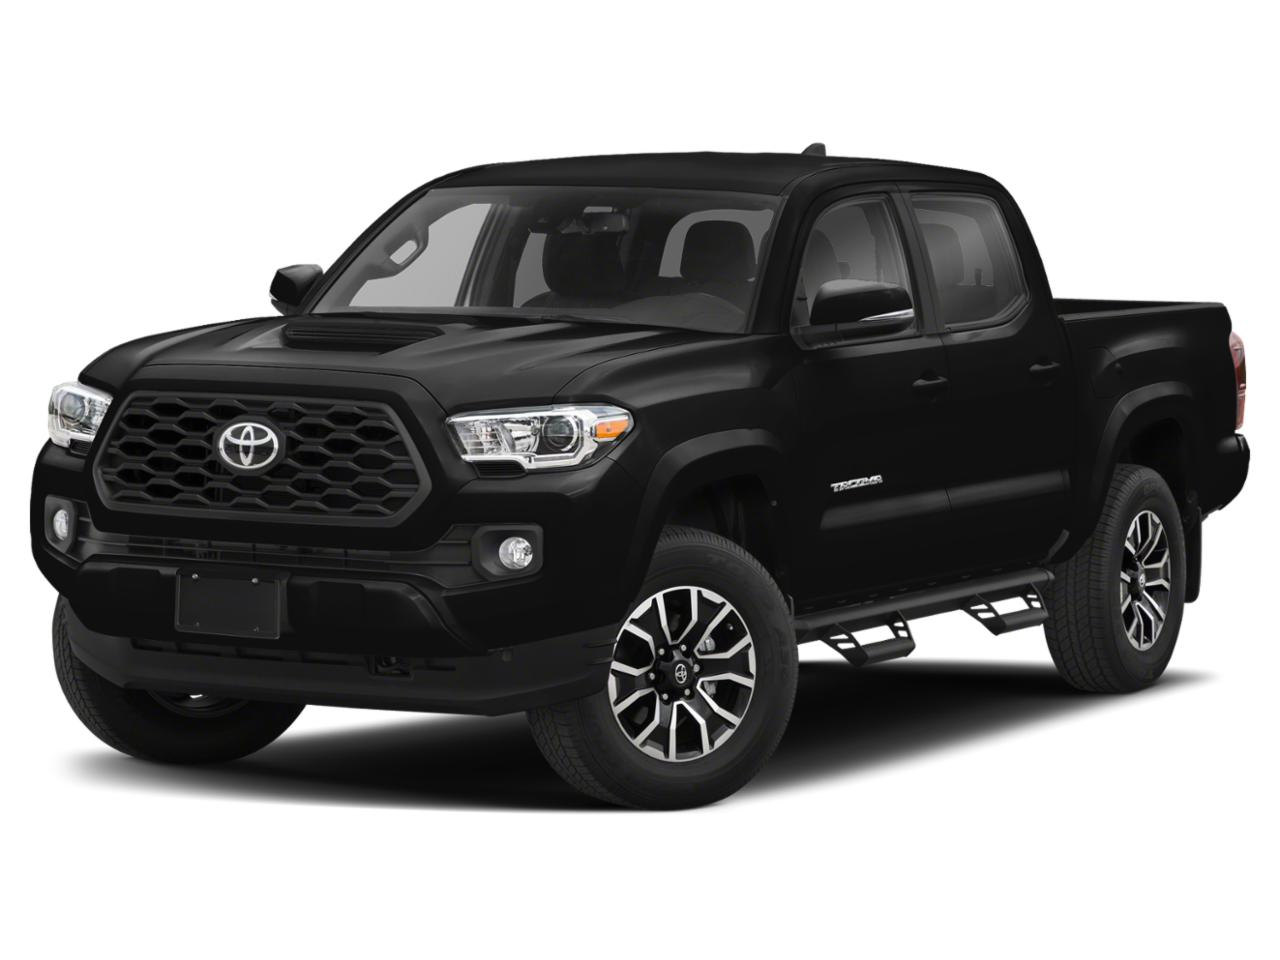 2020 Toyota Tacoma 4WD Vehicle Photo in SPRUCE PINE, NC 28777-8581